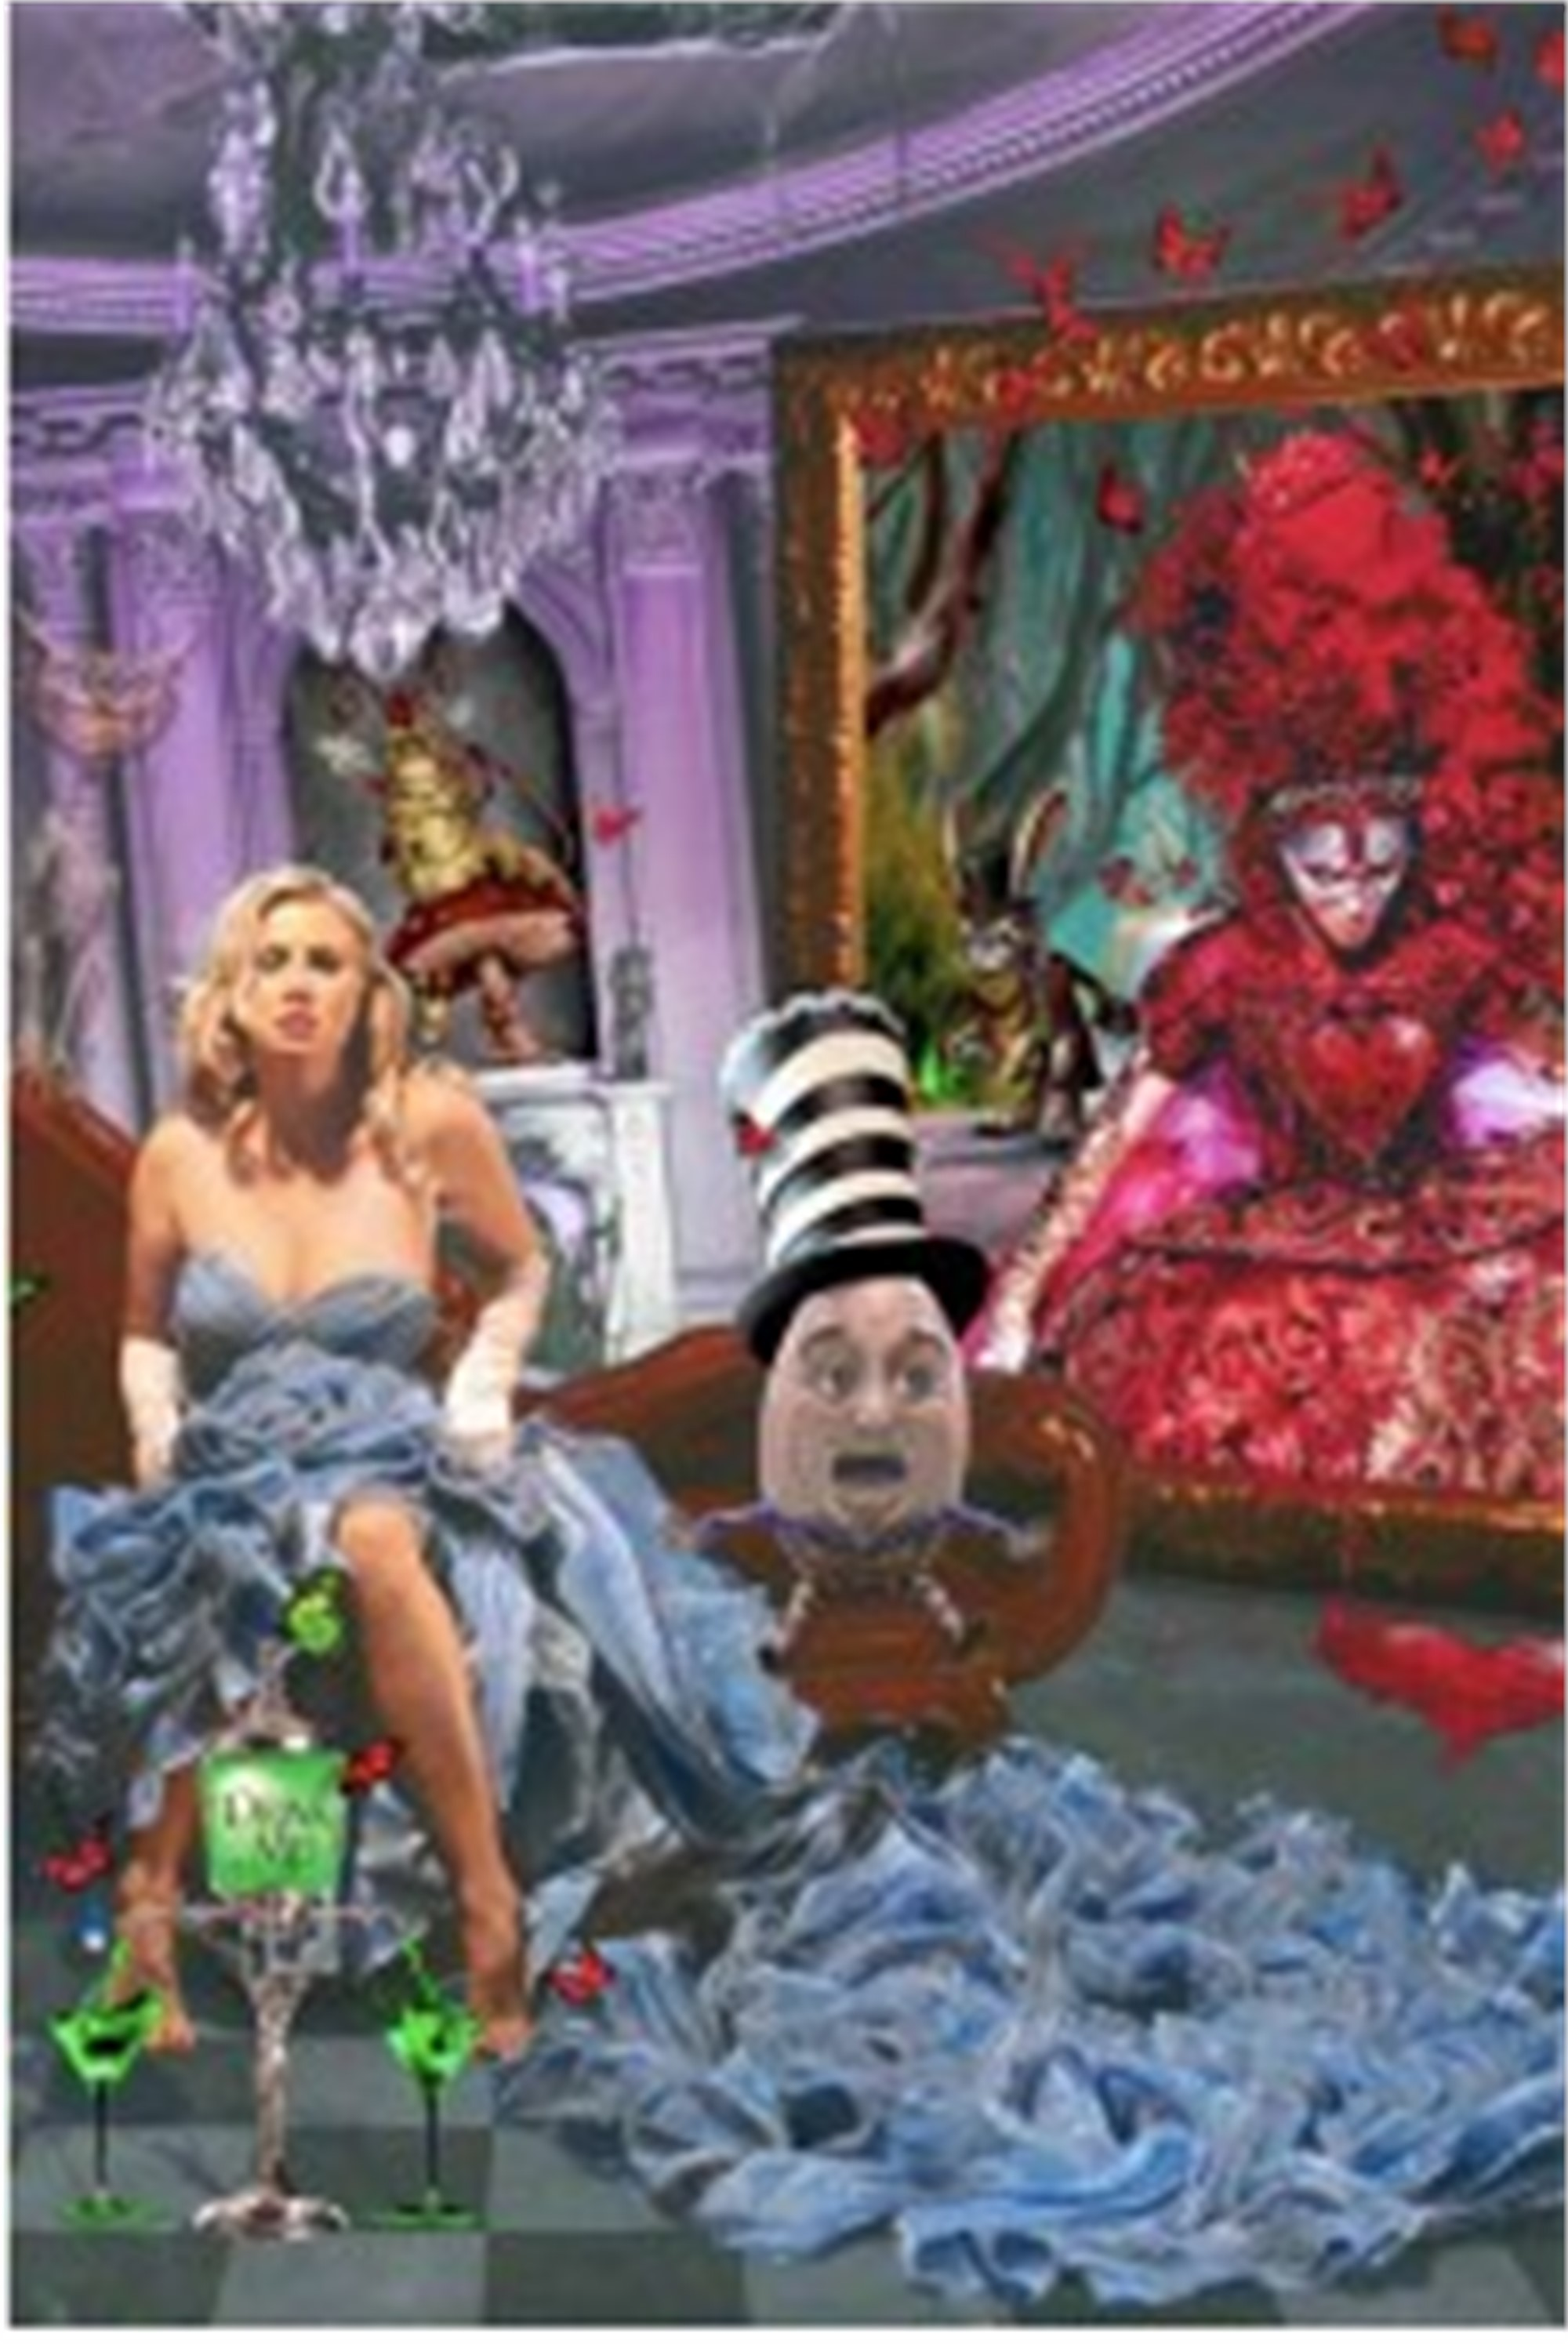 Alice - Drink Me- Absinthe Makes the Heart Grow Fonder by Adam Scott Rote